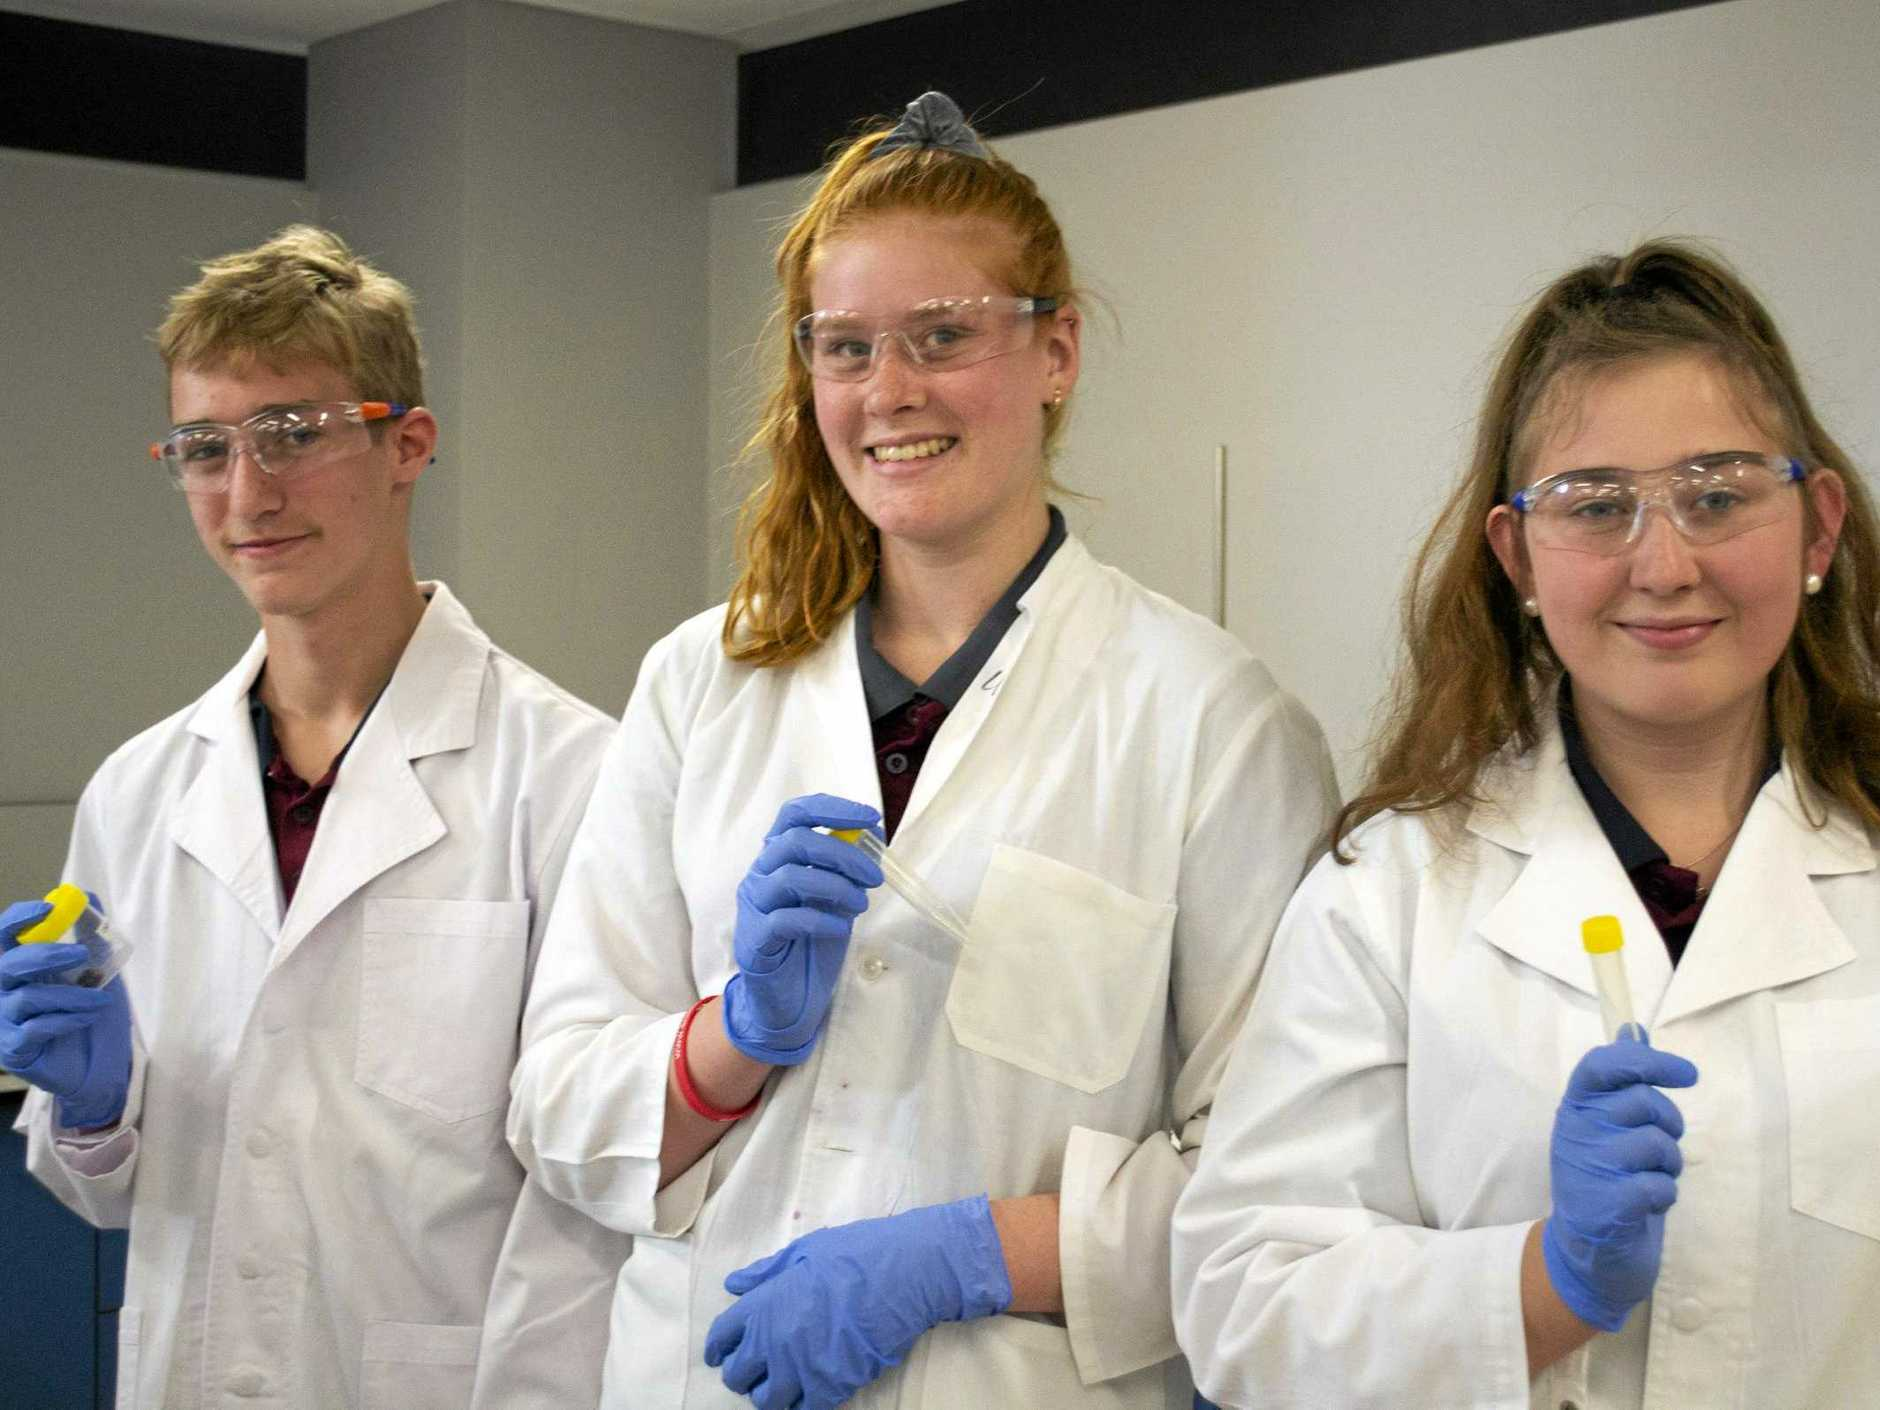 Nanango State High School's Joshua Feakins, Danika Deweers and Bella Schilf take science to the next level at UQ's Experience Science program.